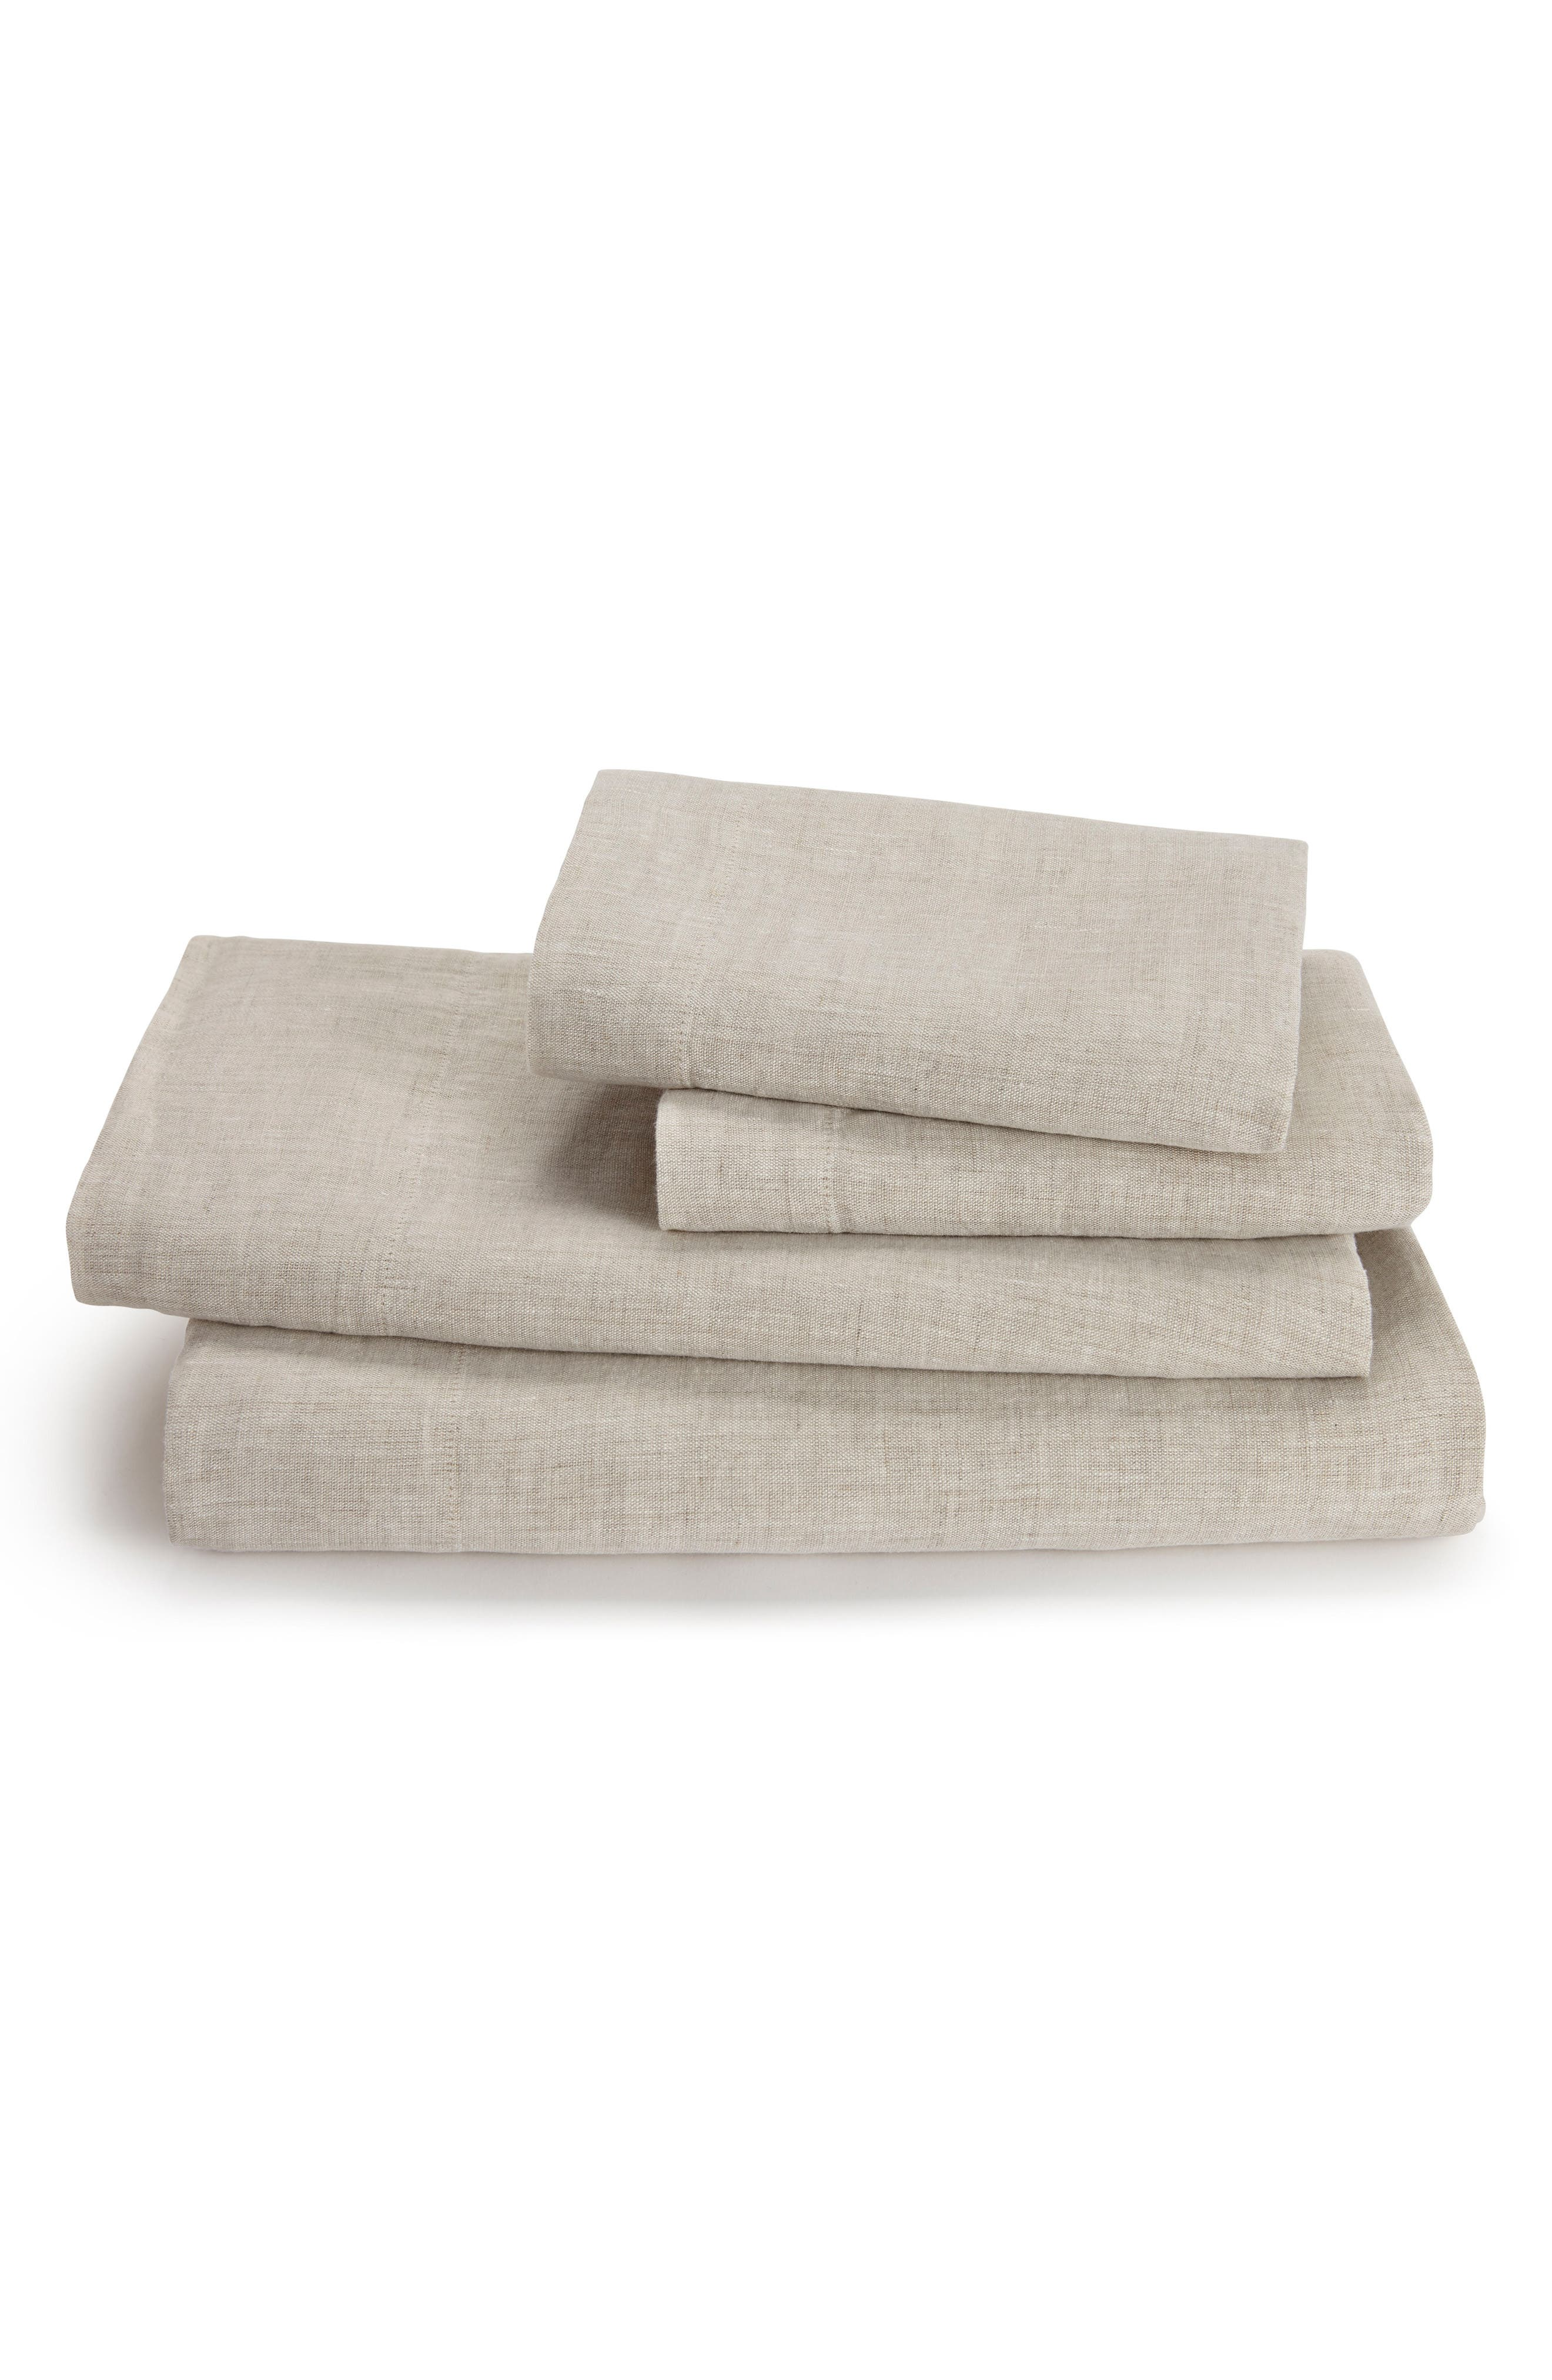 KASSATEX Lino Linen 300 Thread Count Fitted Sheet